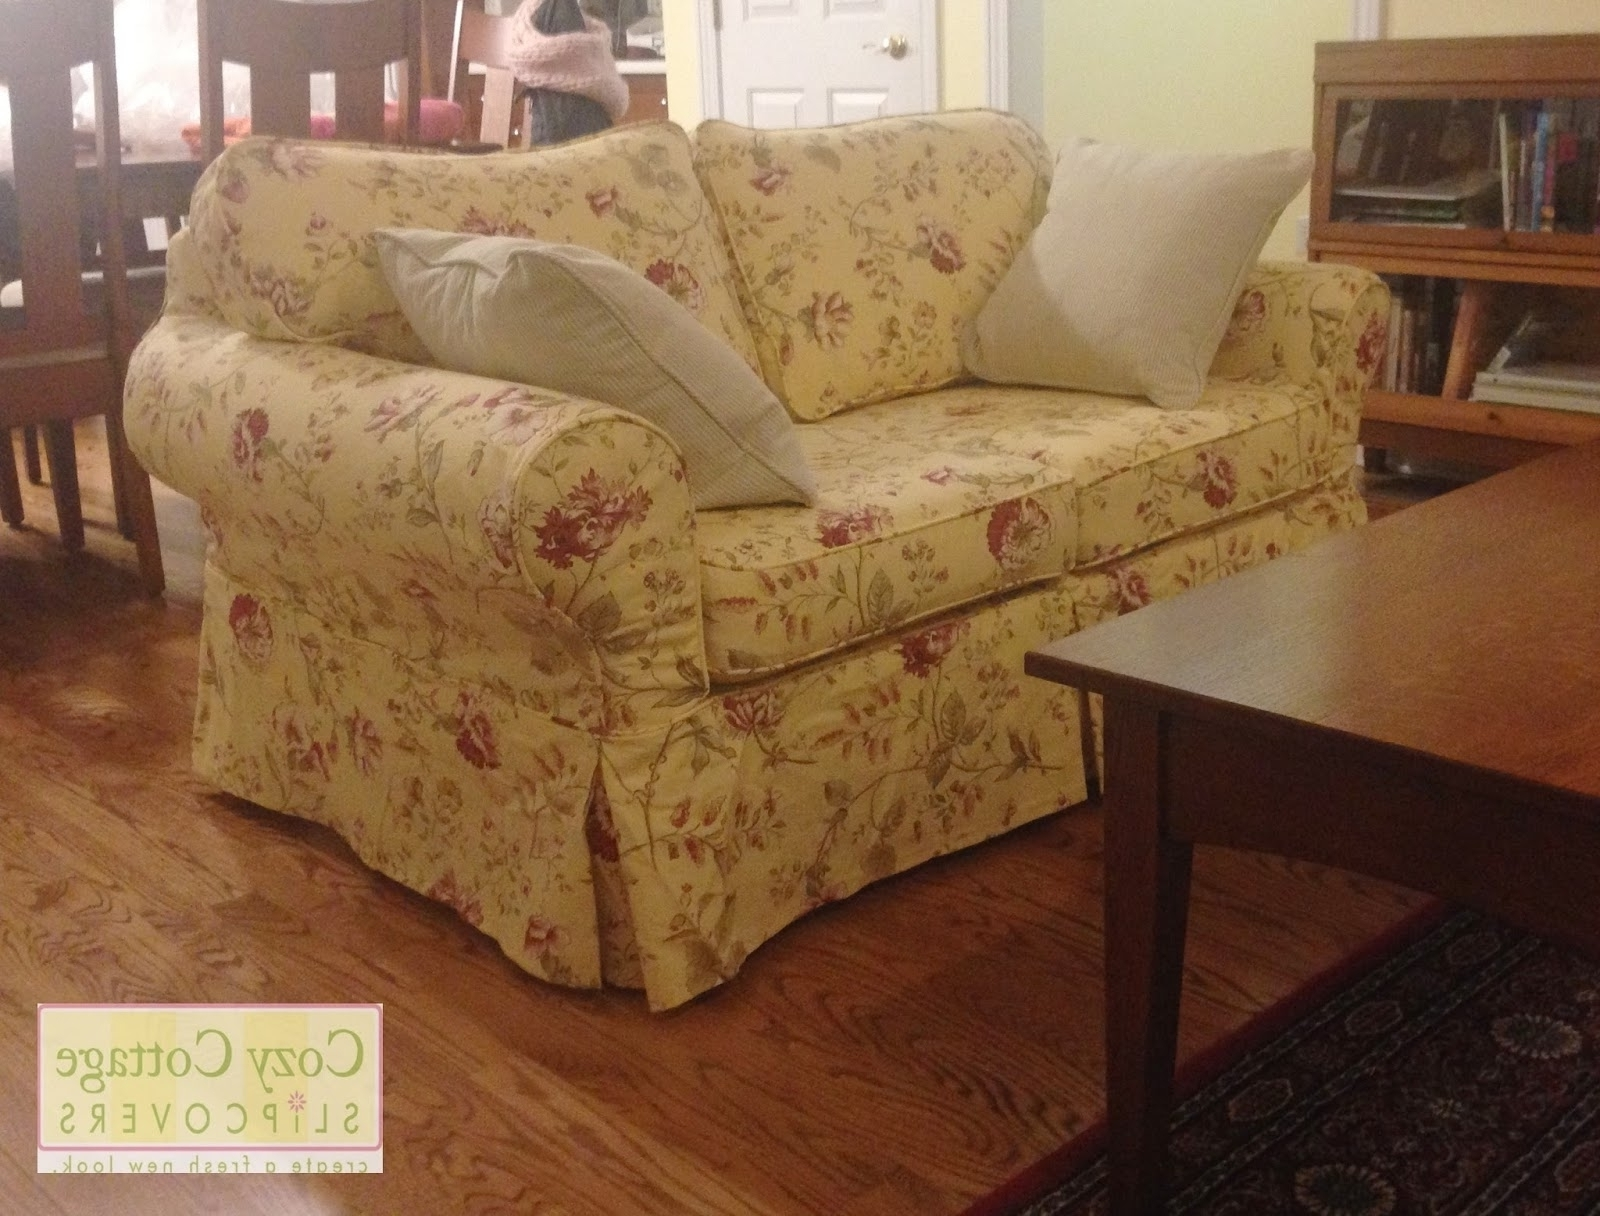 Country Cottage Sofas And Chairs Pertaining To Fashionable Country Cottage Sofas And Chairs Cottag Country Cottage Sofas And (View 6 of 20)